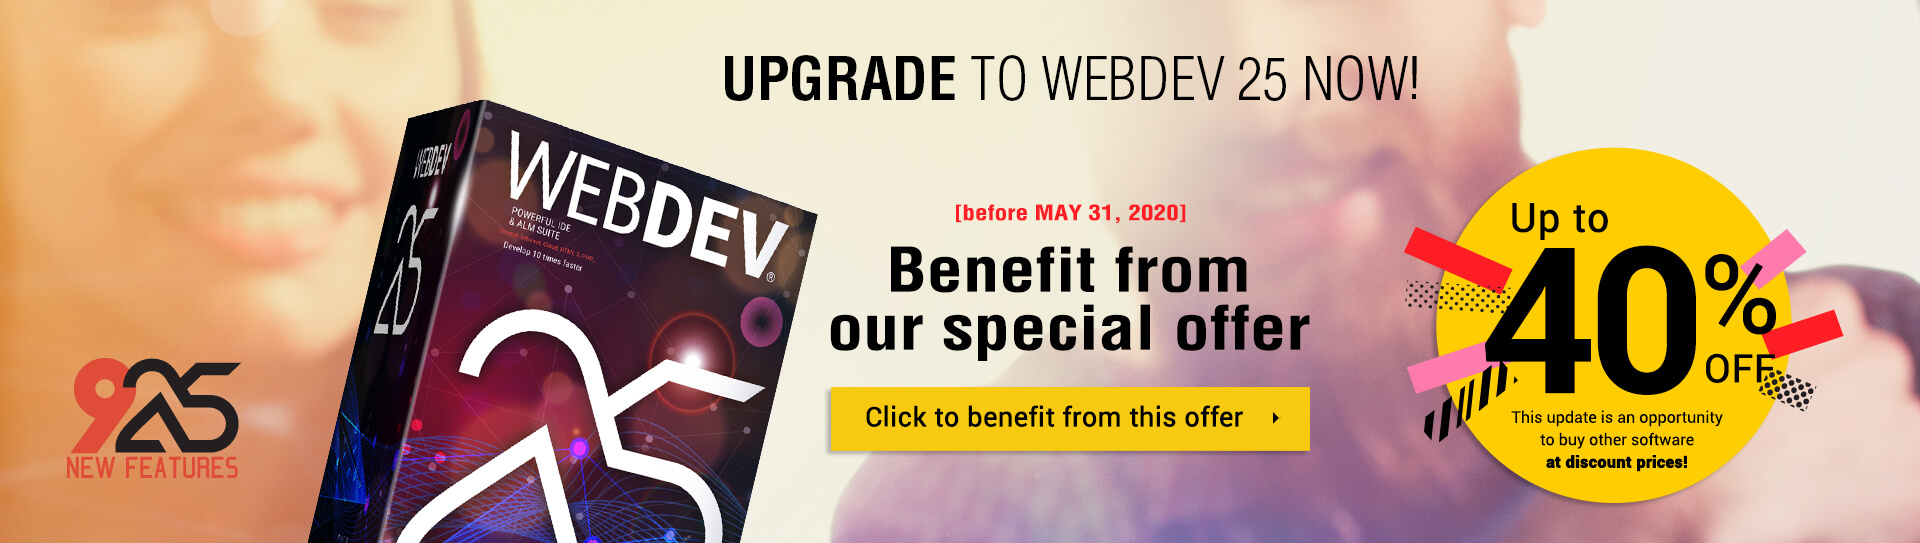 Upgrade to WEBDEV 25 now